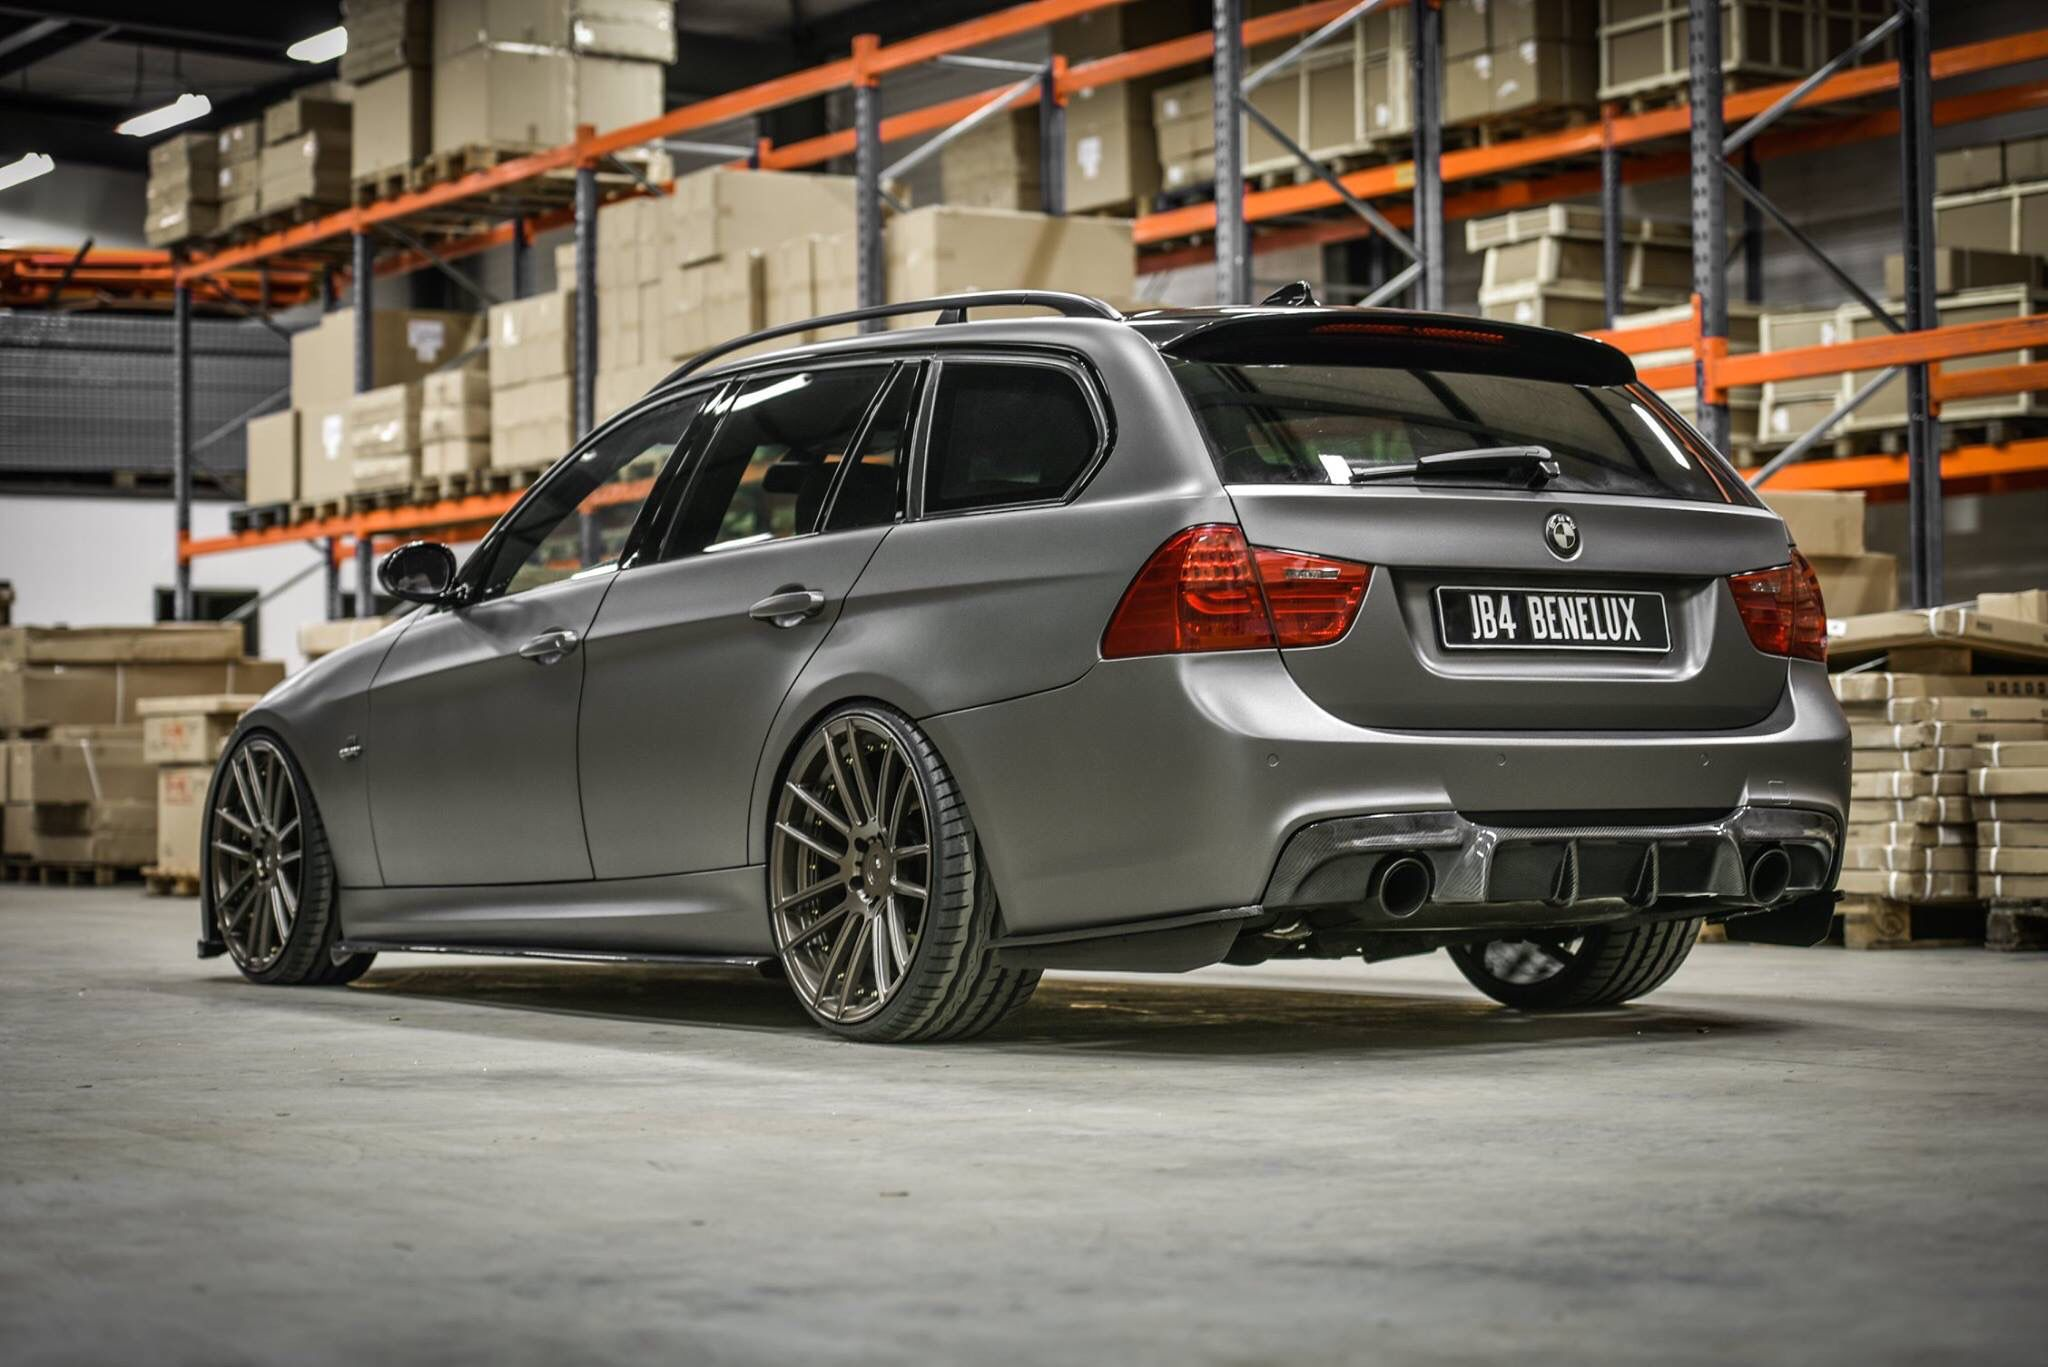 335i by jb4 tuning benelux 820hp cars bmw touring bmw for Benelux cars